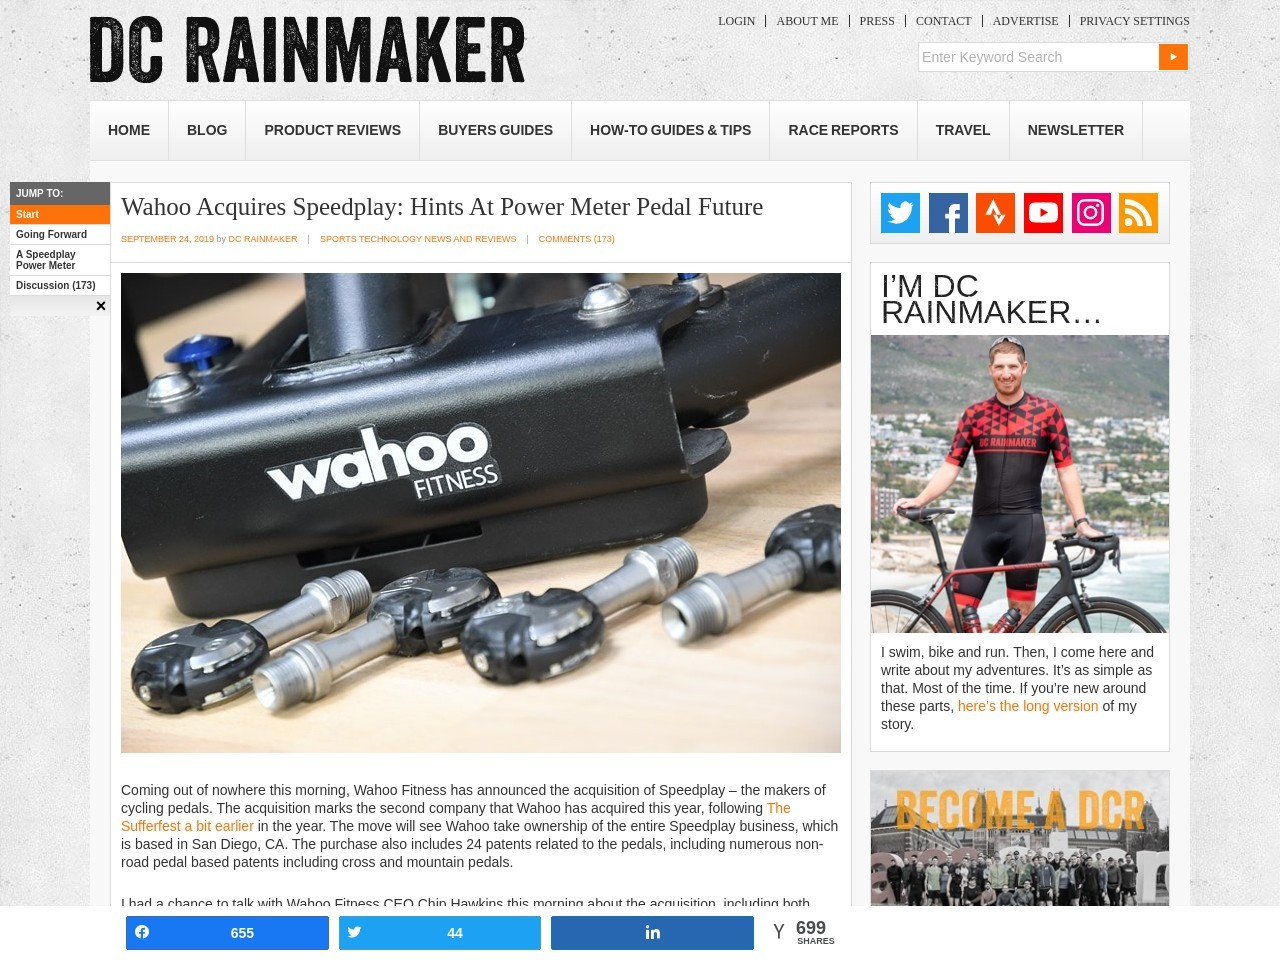 Wahoo Acquires Speedplay: Hints At Power Meter Pedal Future